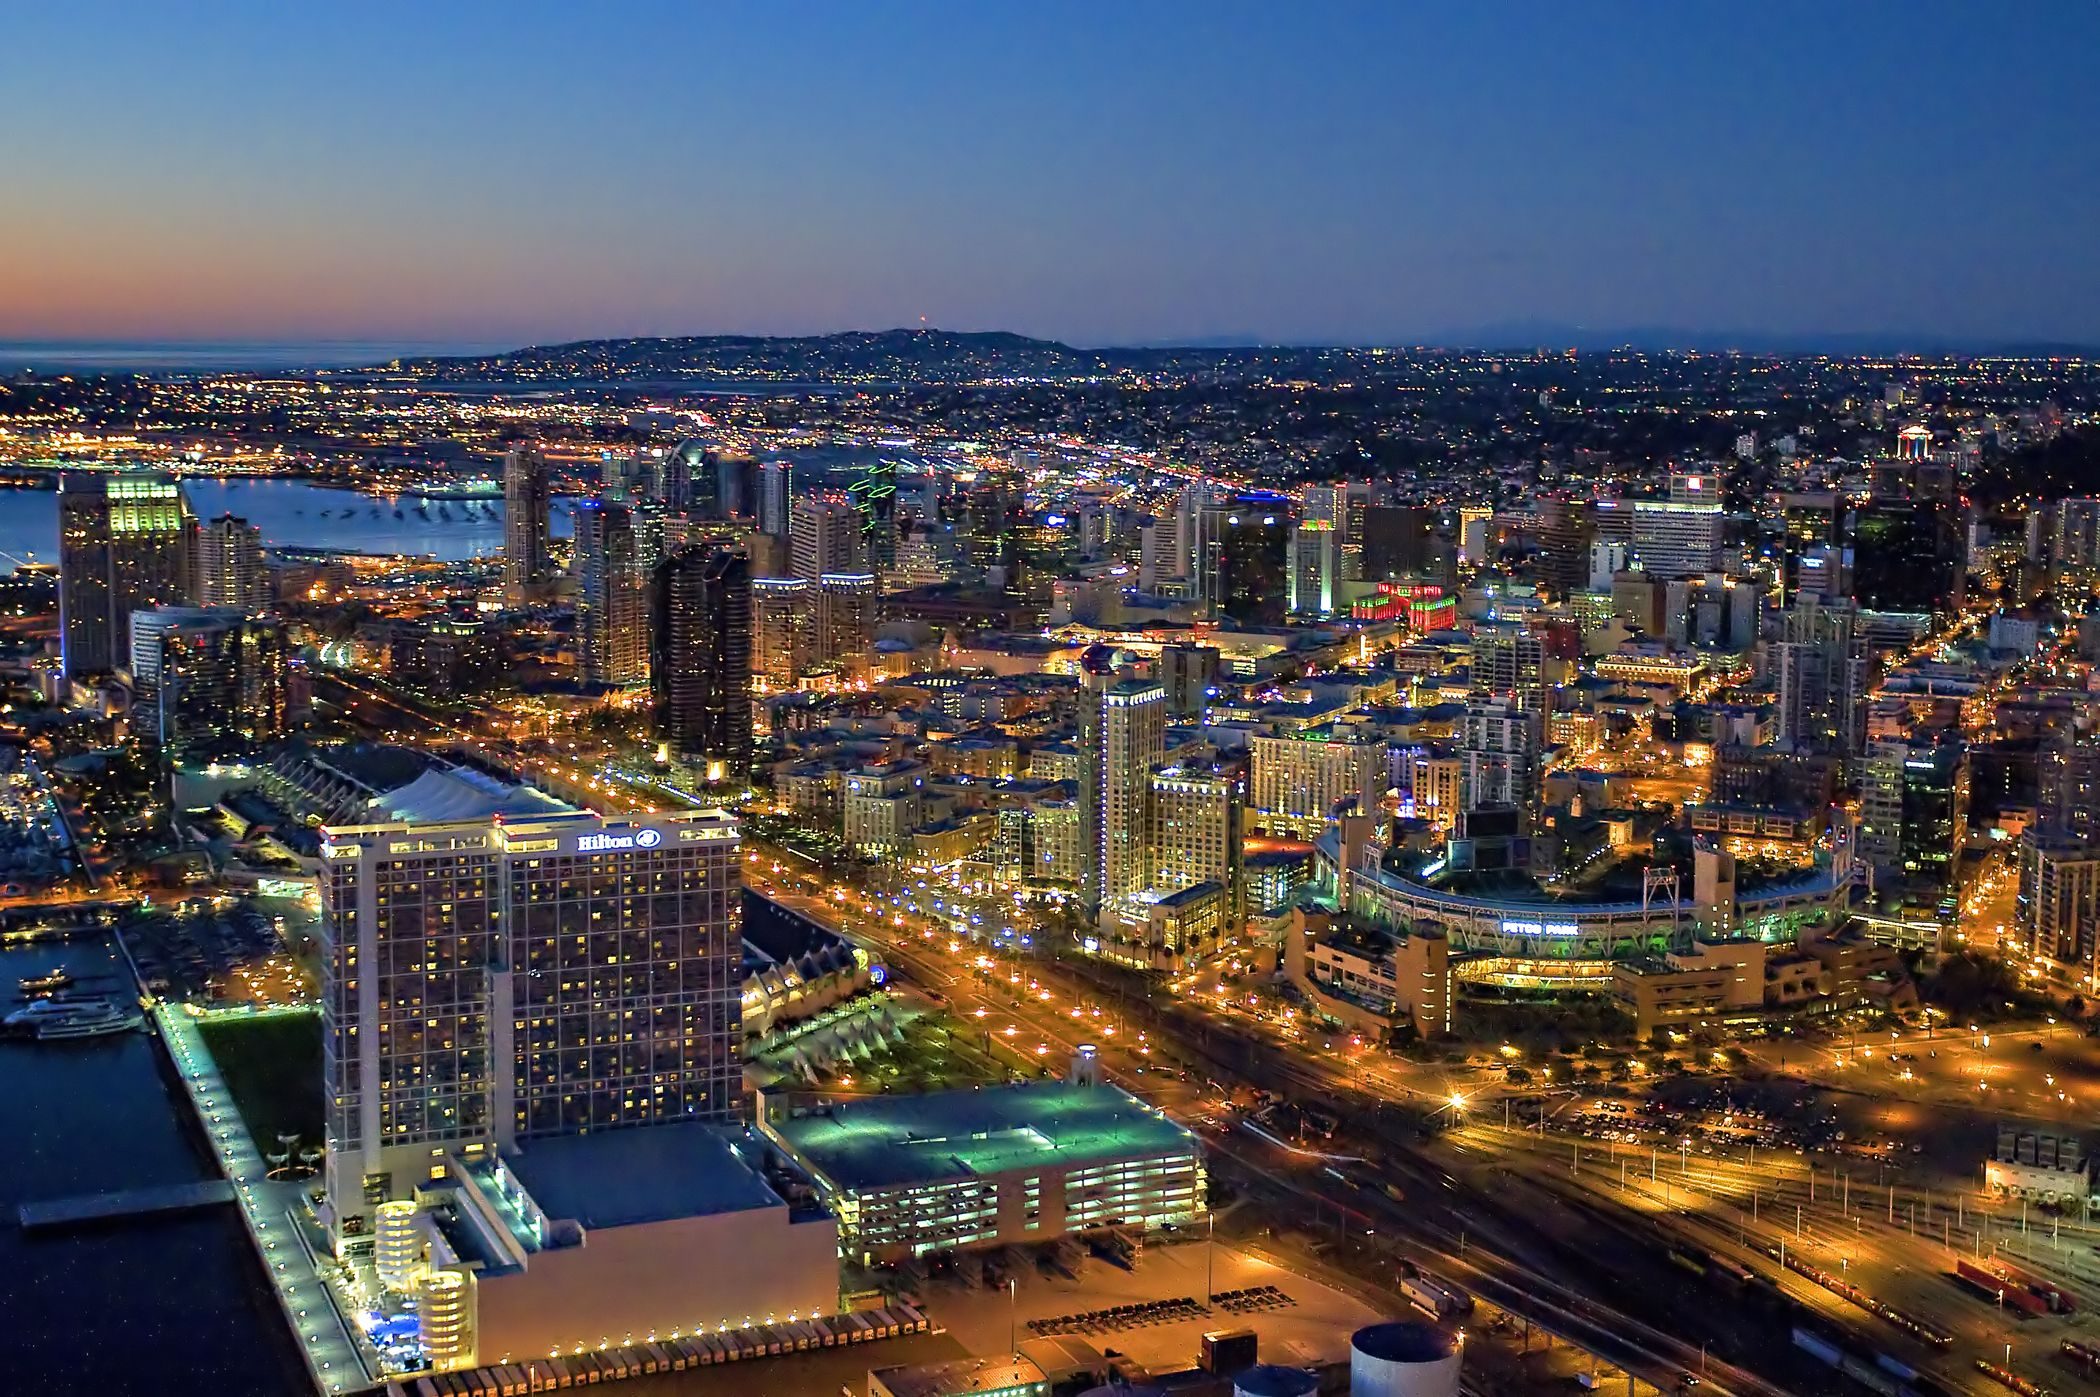 Evening view of downtown San Diego | The Hotel | Pinterest